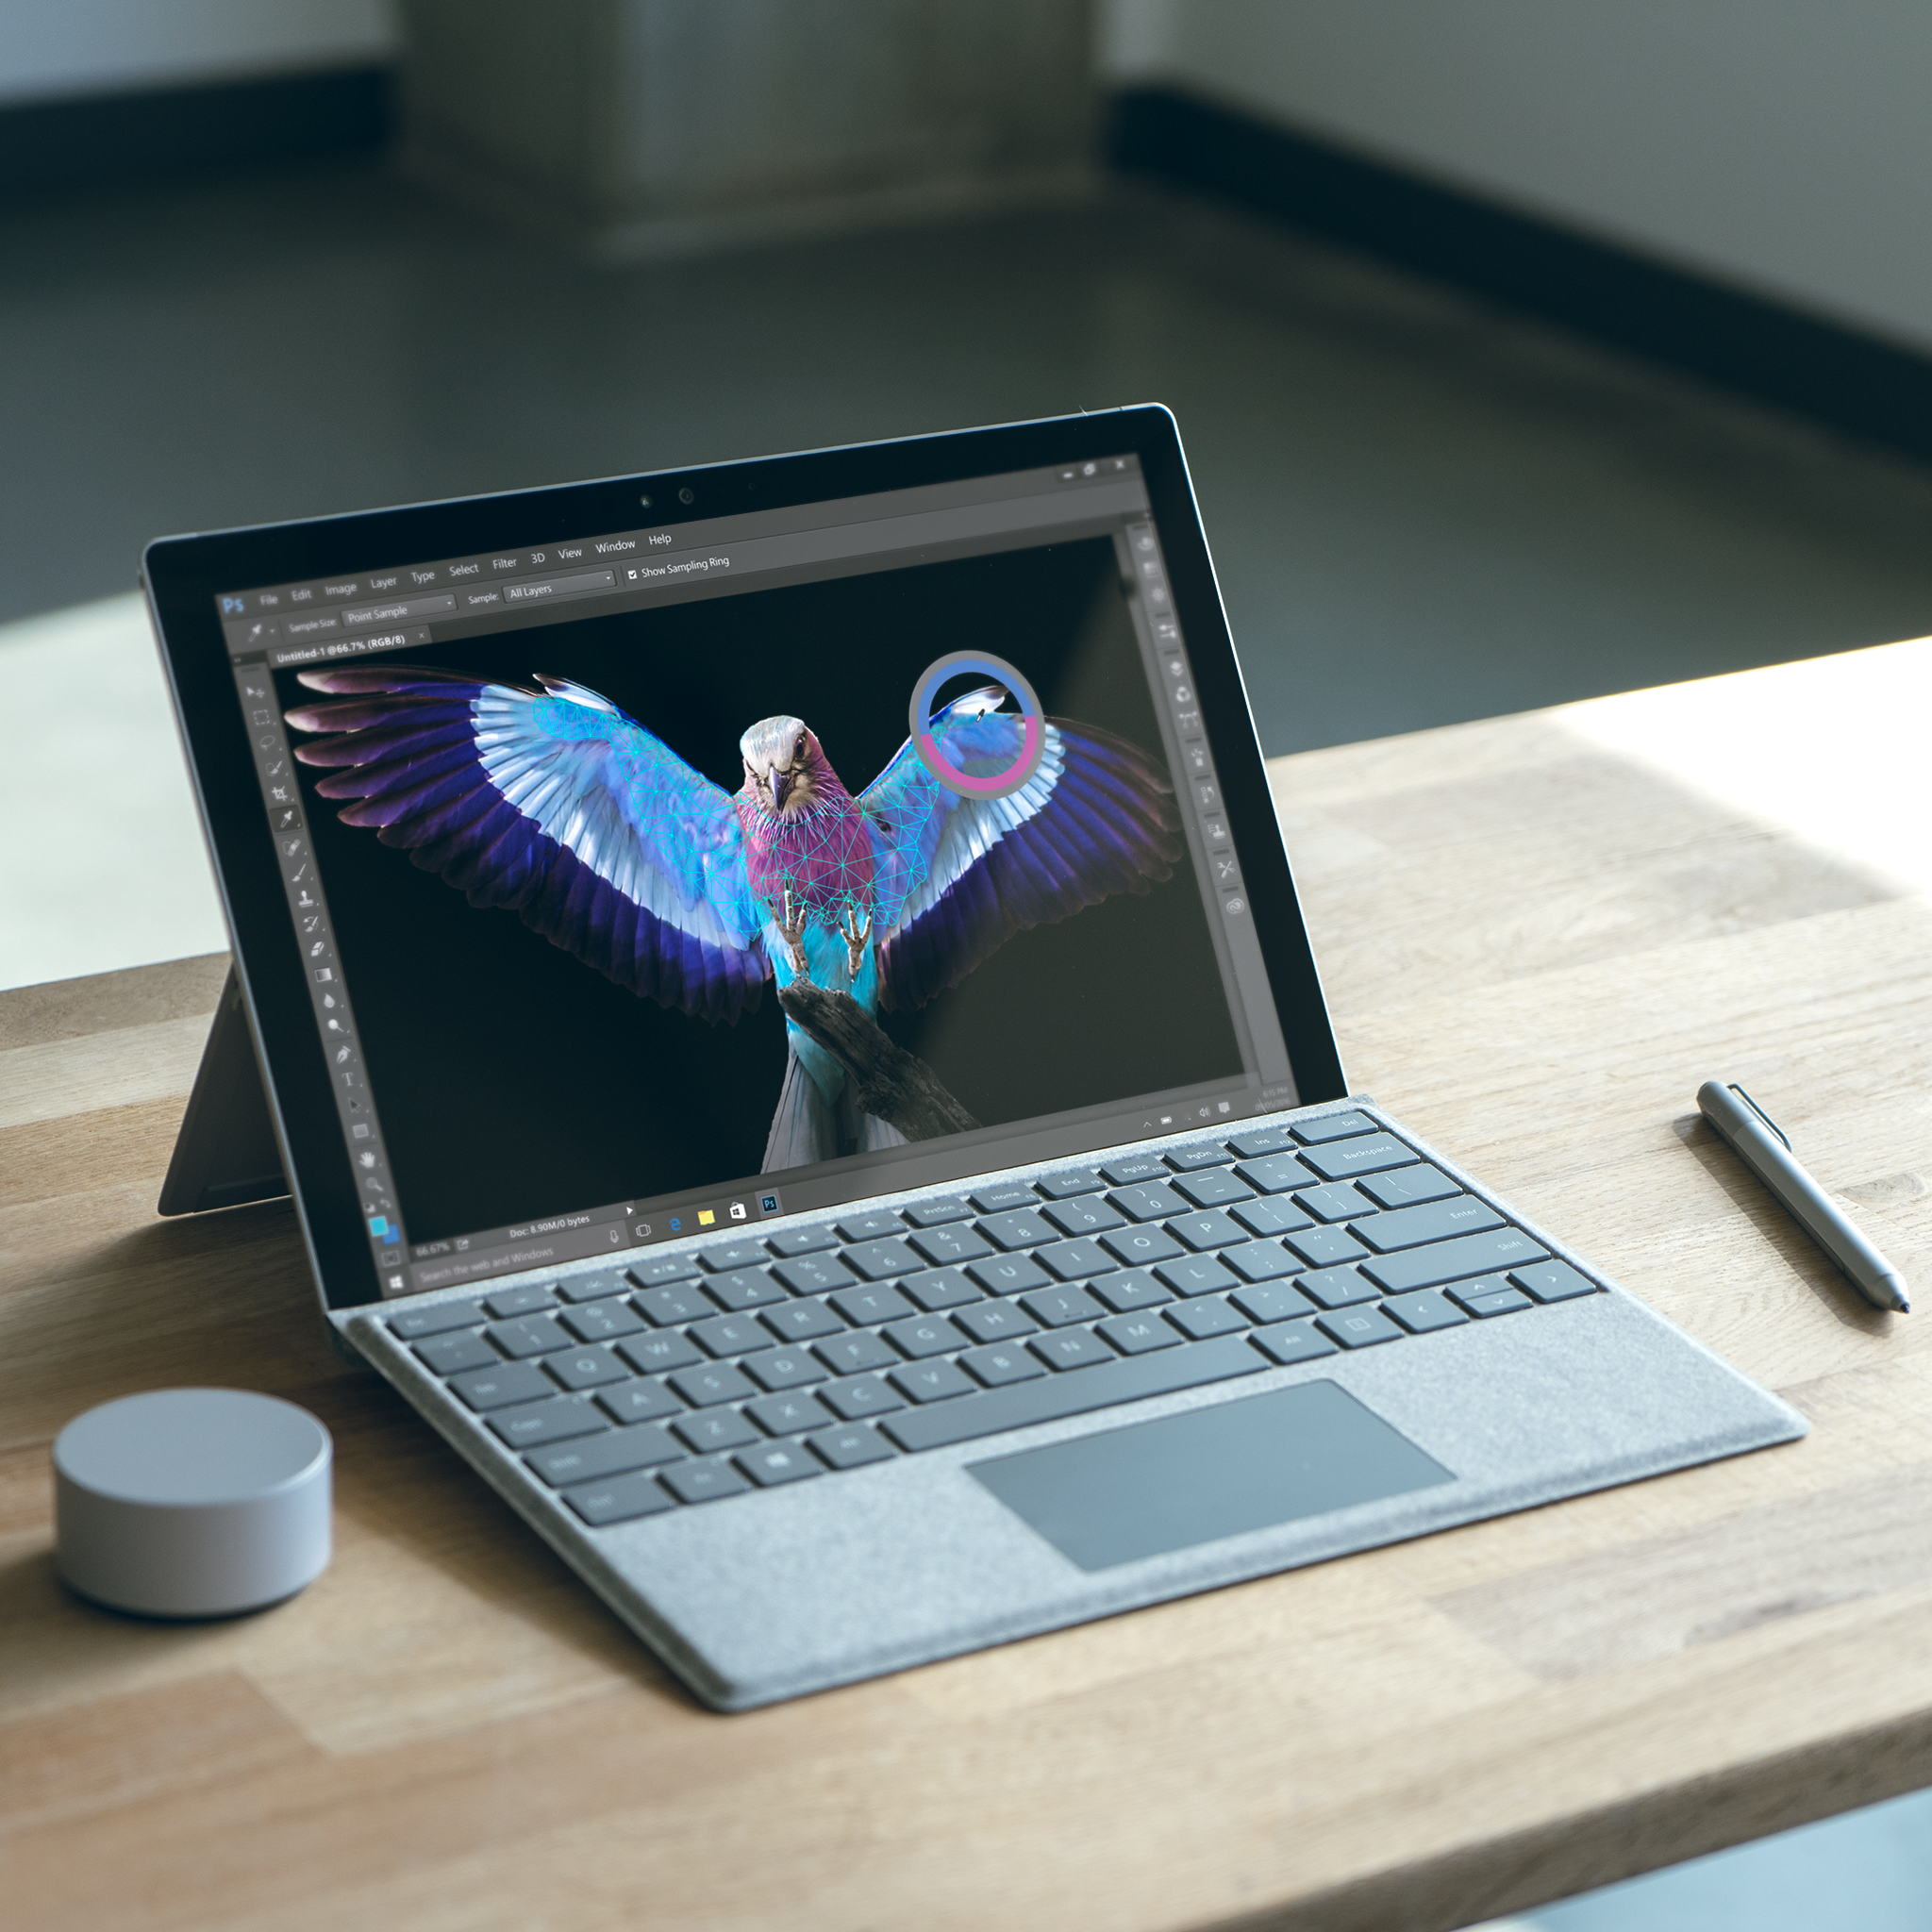 Soar to new creative heights on the computer designed with